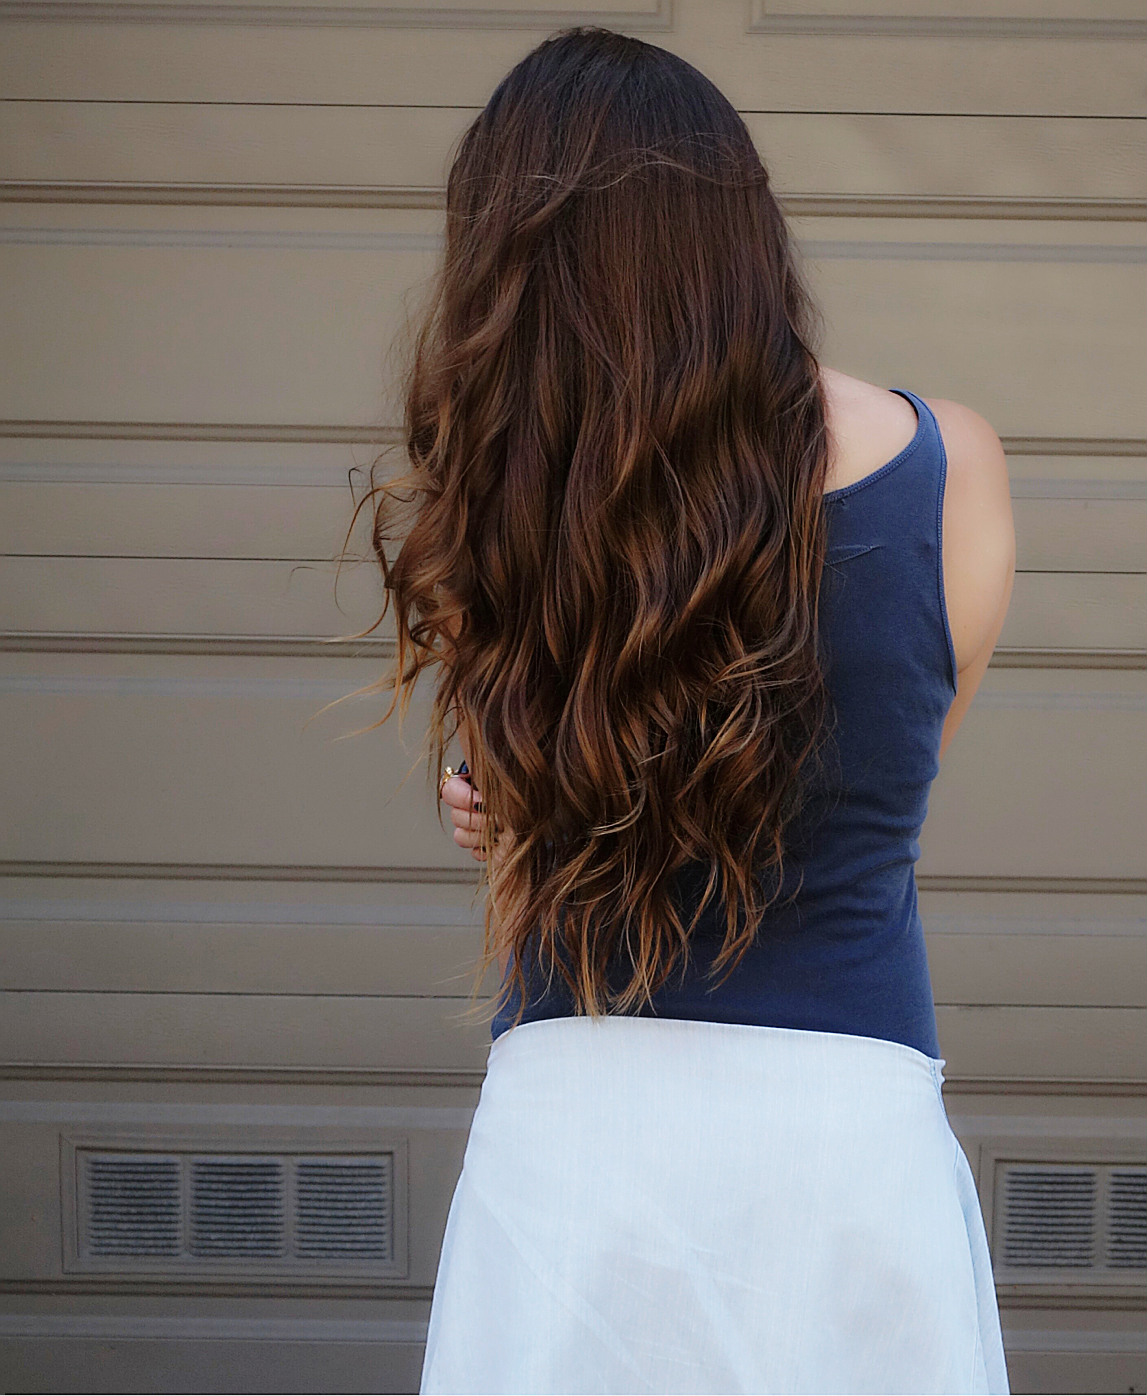 Long natural hair. Stateside tank dress